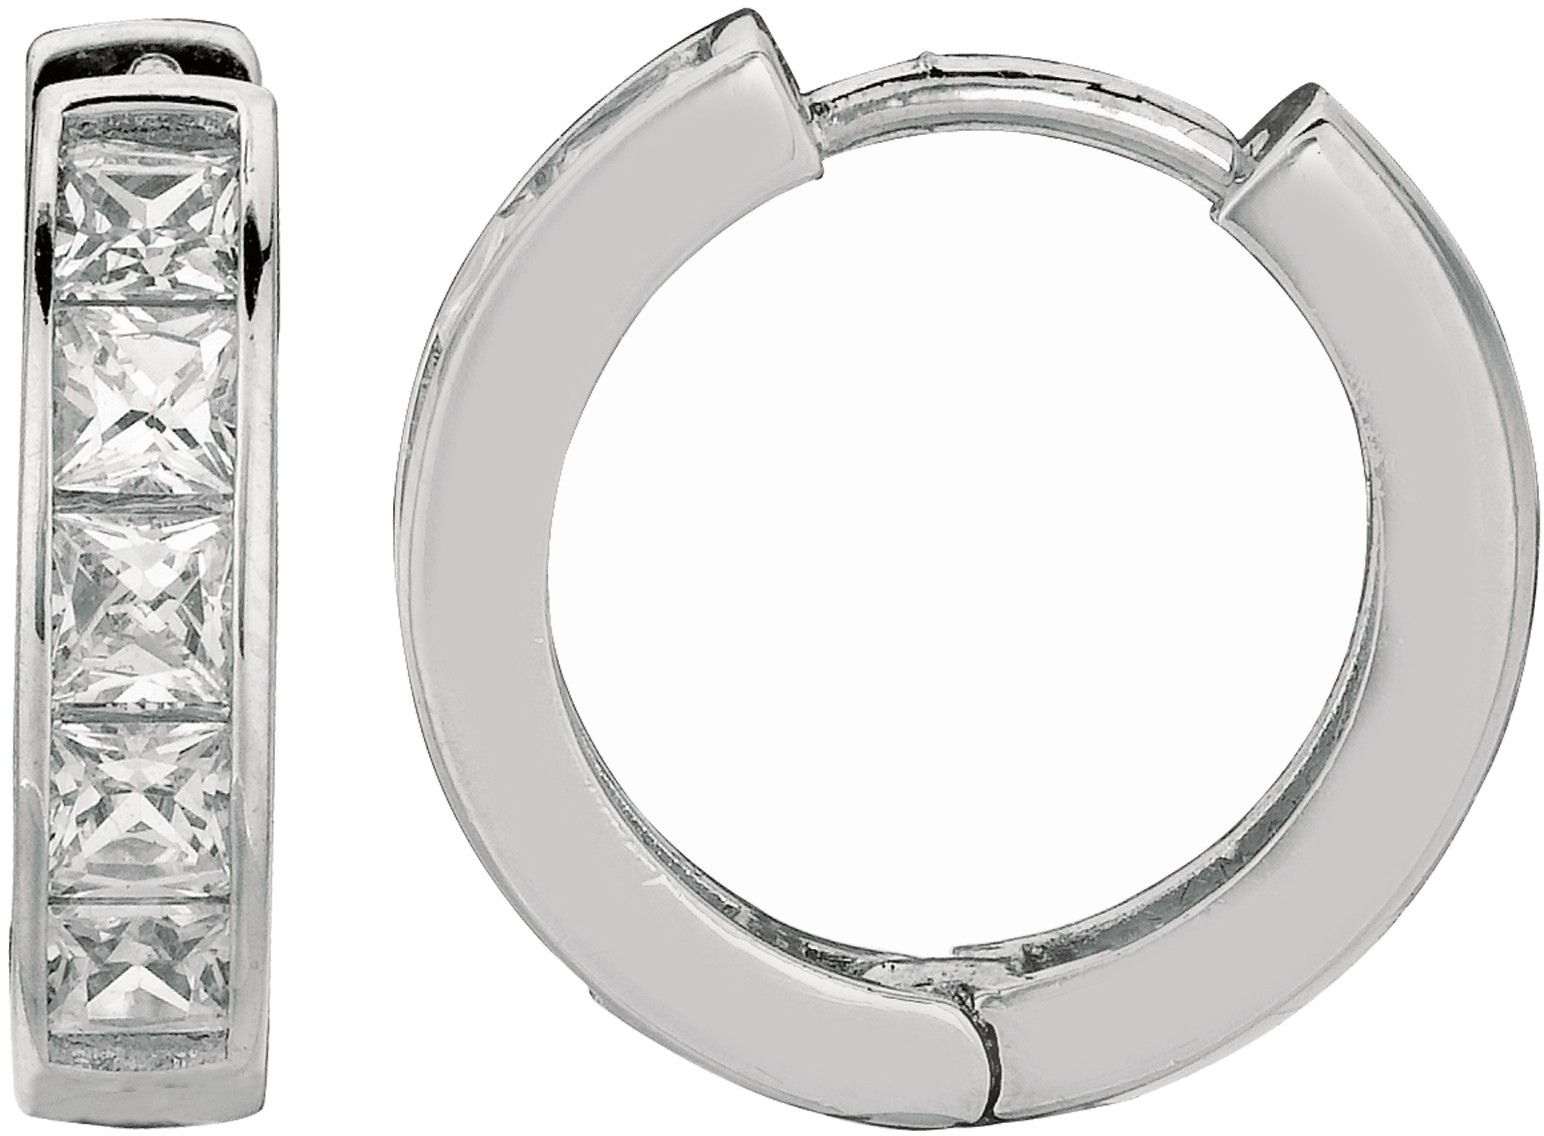 "Silver Rhodium Plated Shiny 4.0x13mm (0.16""x0.51"") Clear Cubic Zirconia (CZ) Huggie Hoop Earrings (BTAGE422)"